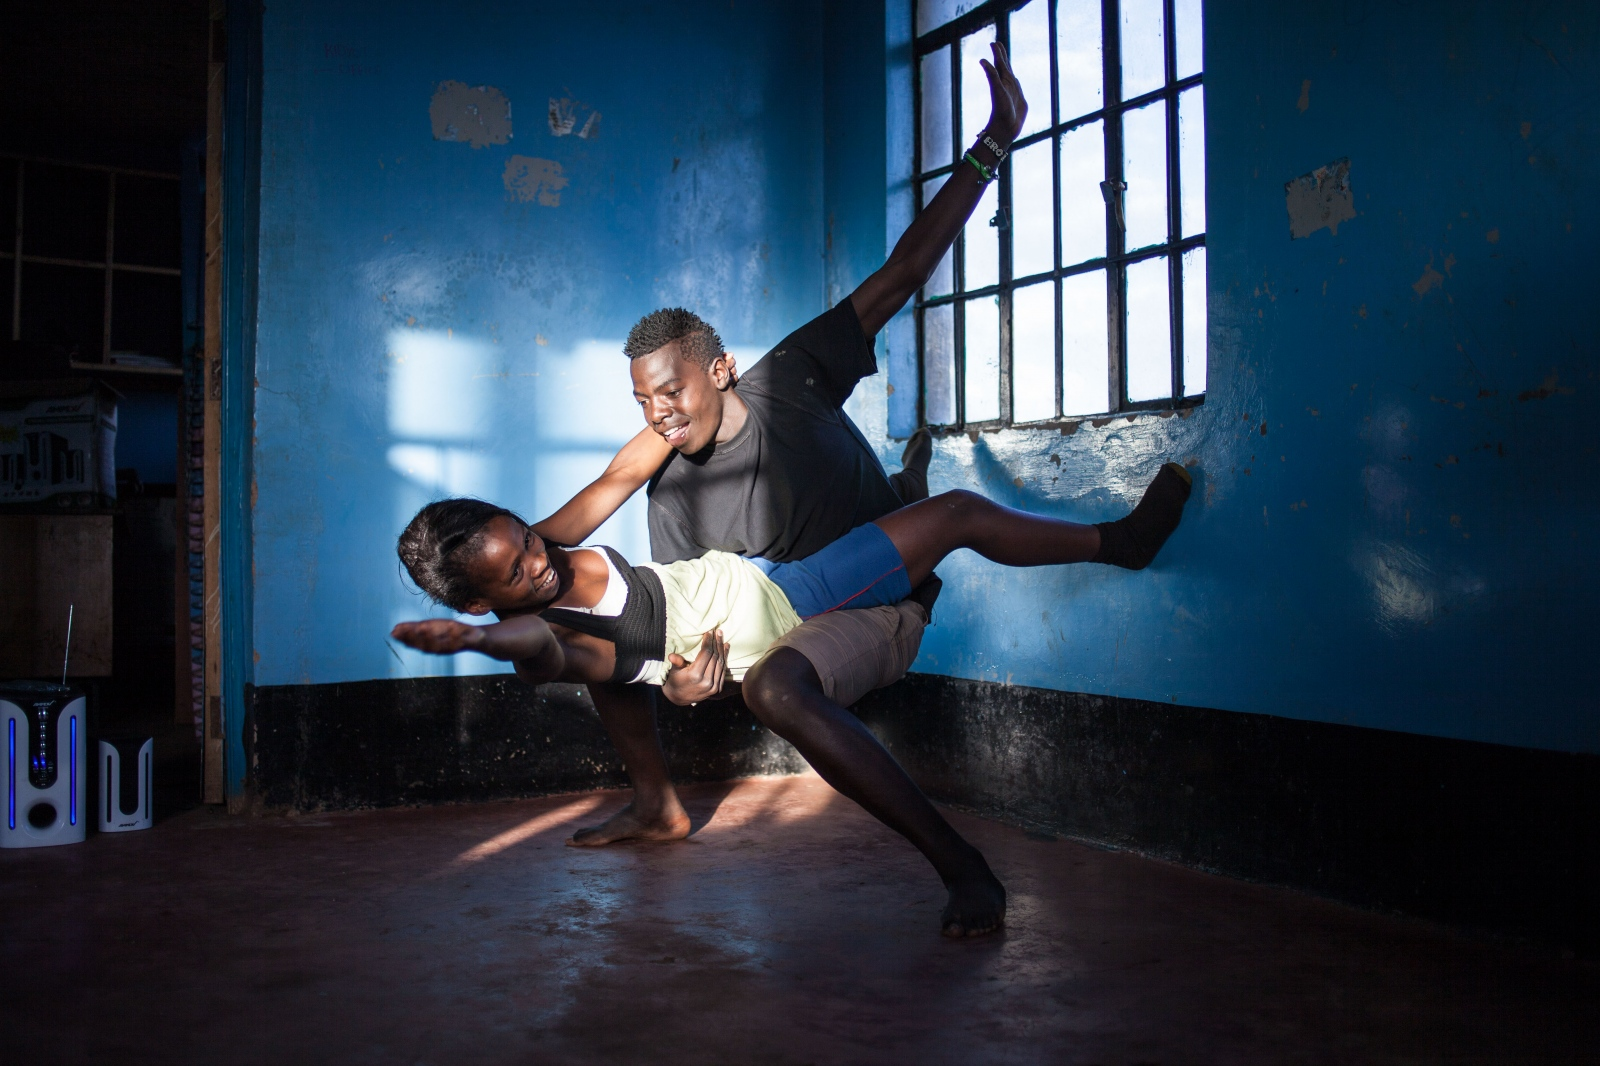 Kibera Slum, Nairobi, KENYA, November 06, 2013: Quintor Adhiambo (17) and Victor Odhiimbo (19) at dance rehearsals of Waasani theatre group. Quintor left school in 7th grade after her father passed away. Her mother is unemployed and couldn't afford to further pay for her education. Through support from the group, which kept her away from bad company, she is now attending a hairdressing course. Victor also had to leave school because his parents could not to pay for his school fees. He is now engaged in the theatre group and hopes to go back to school one day.